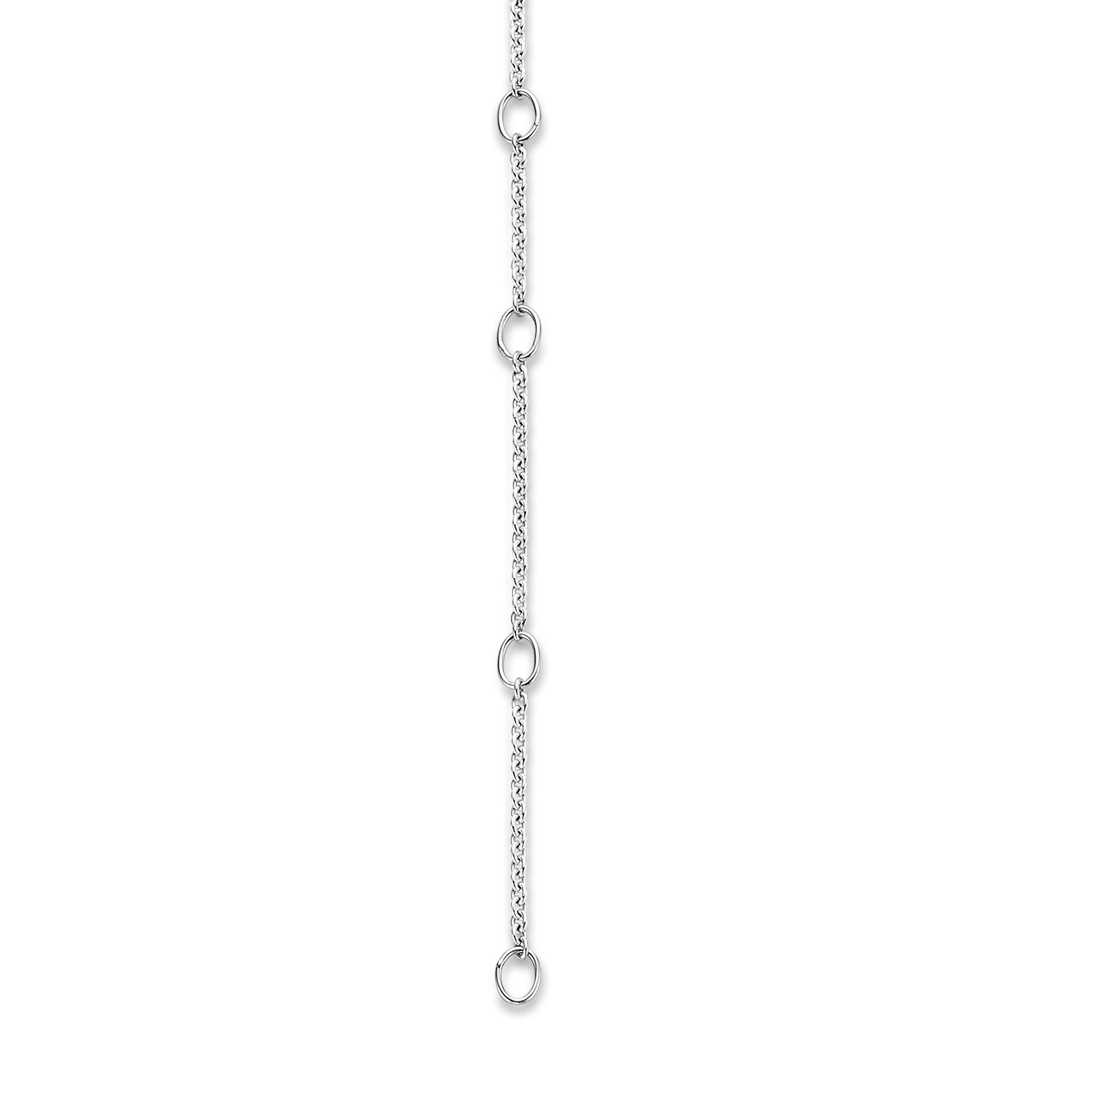 TI SENTO - Milano Necklace 3895WL